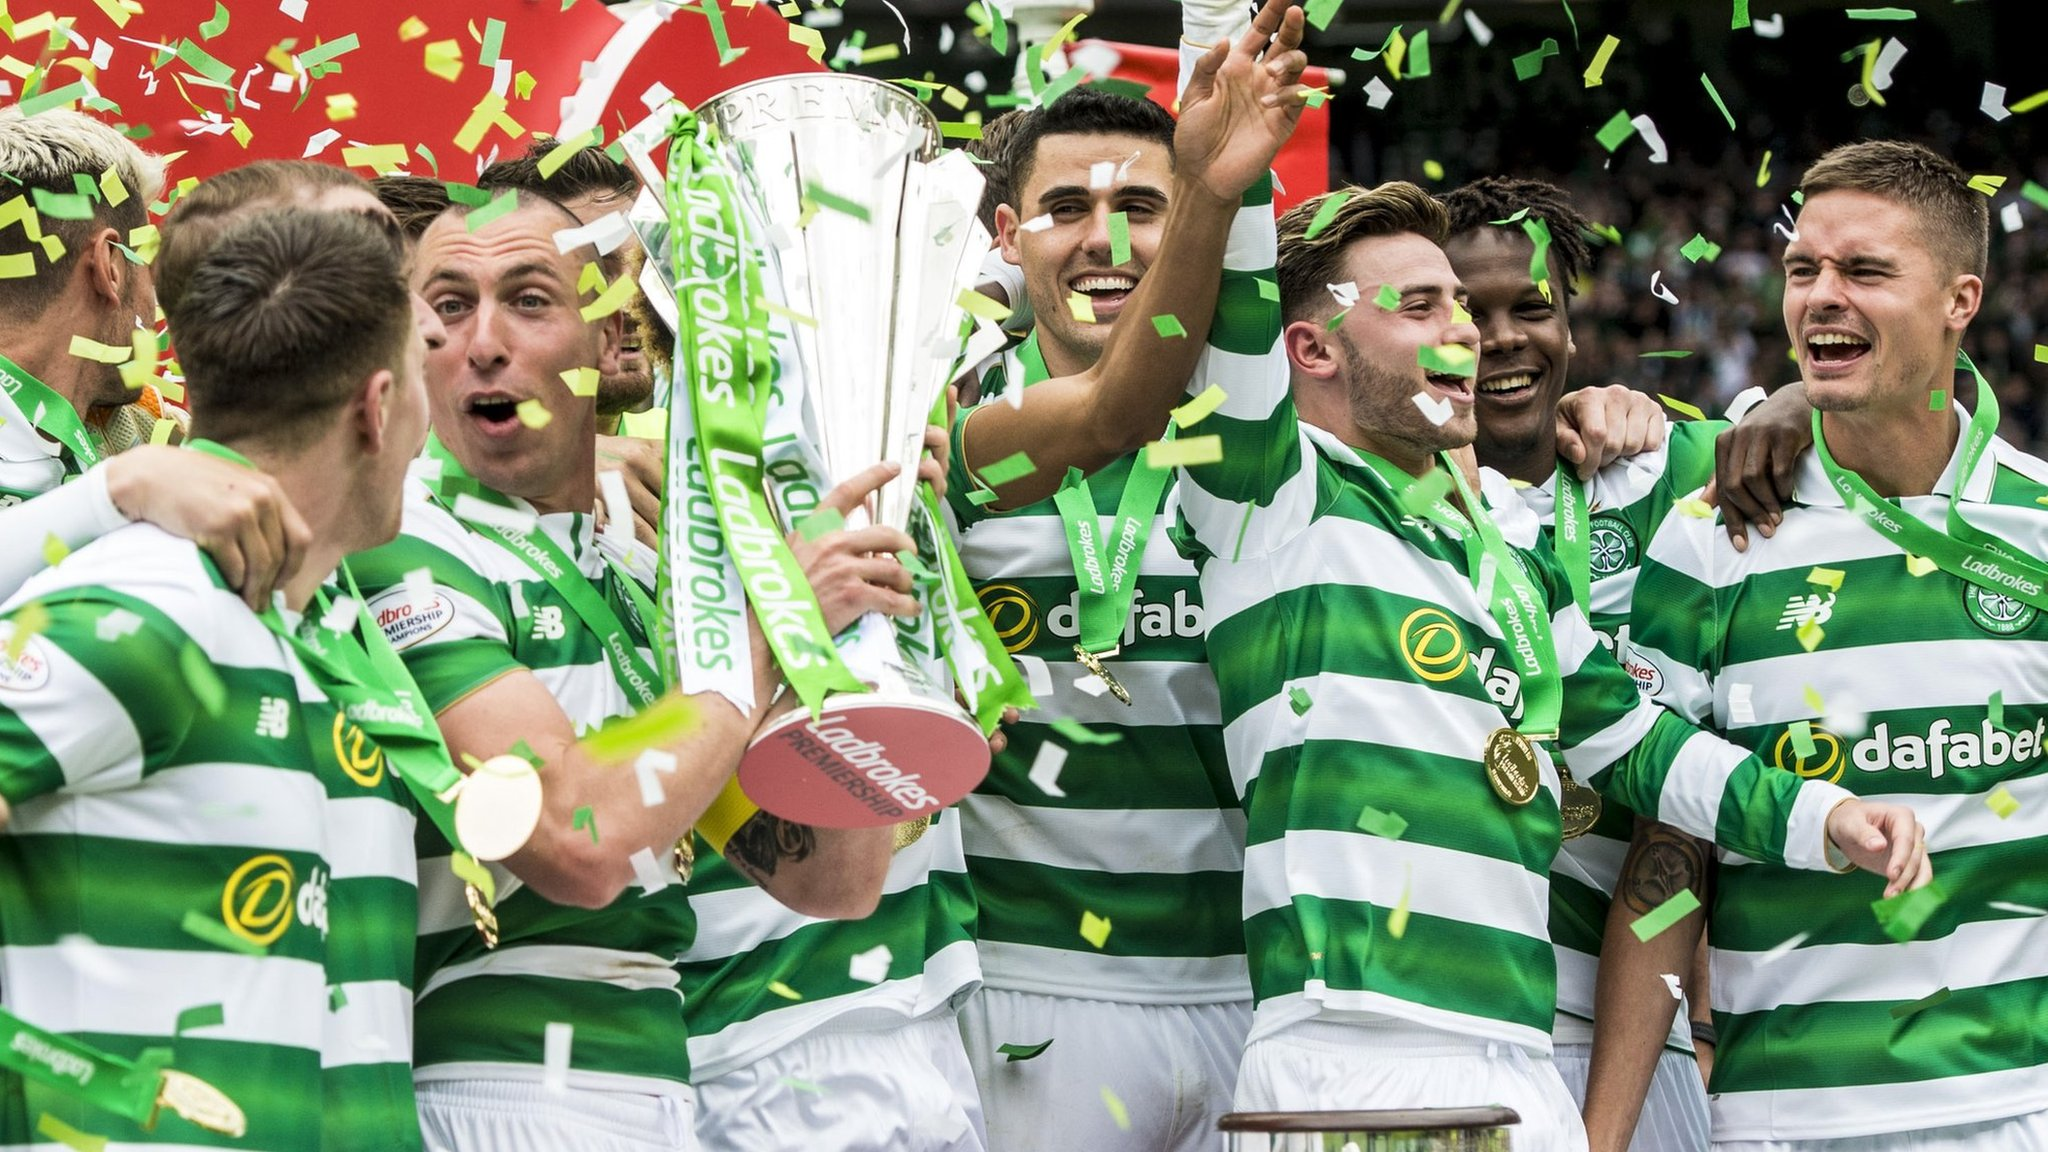 Scottish Premiership fixtures: Celtic open title defence at home to Hearts